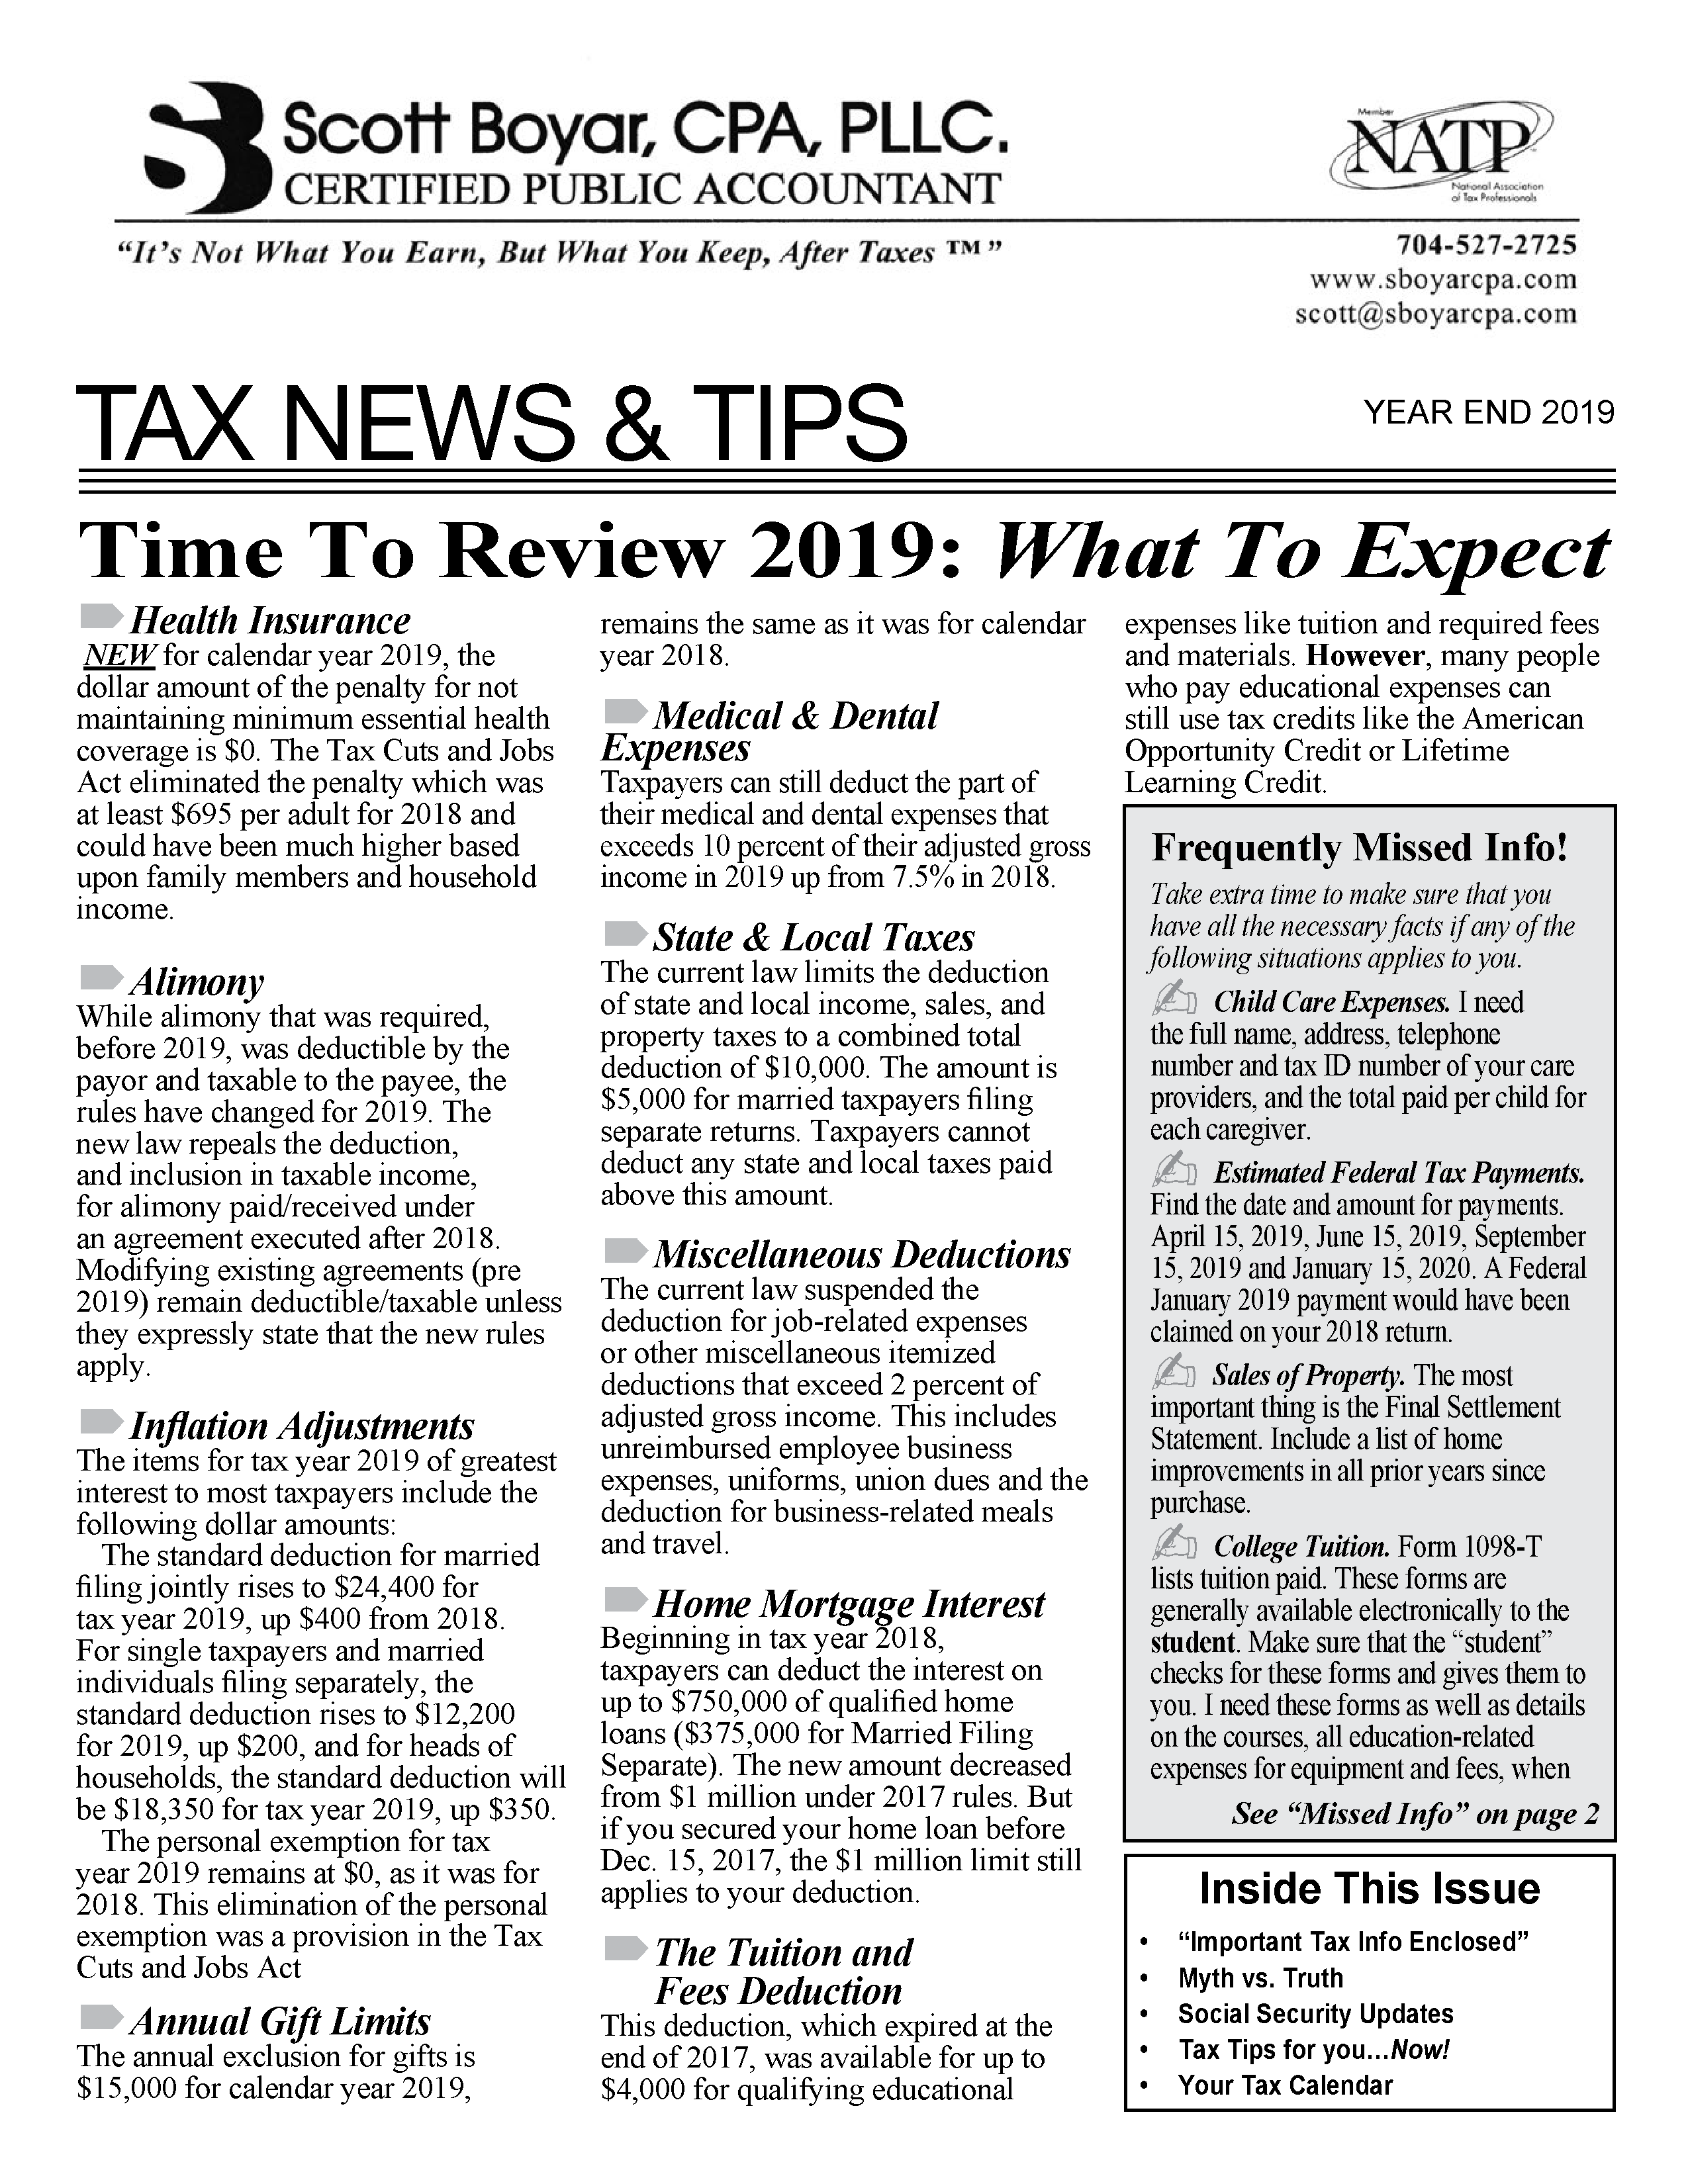 Tax News YE 2019-11-13-2019